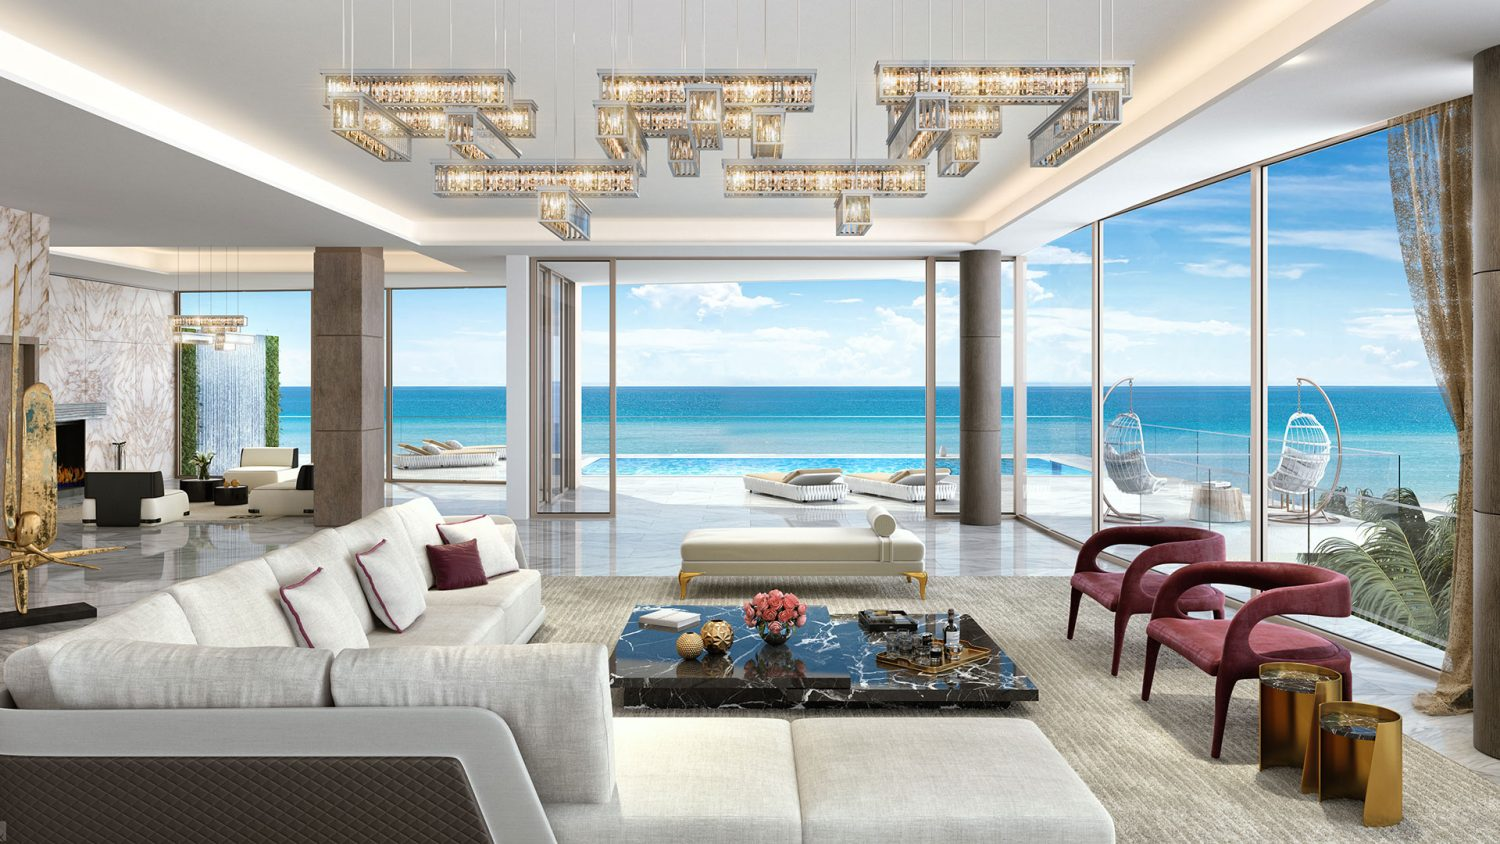 D Living the estates at acqualina gallery luxury estate amenities